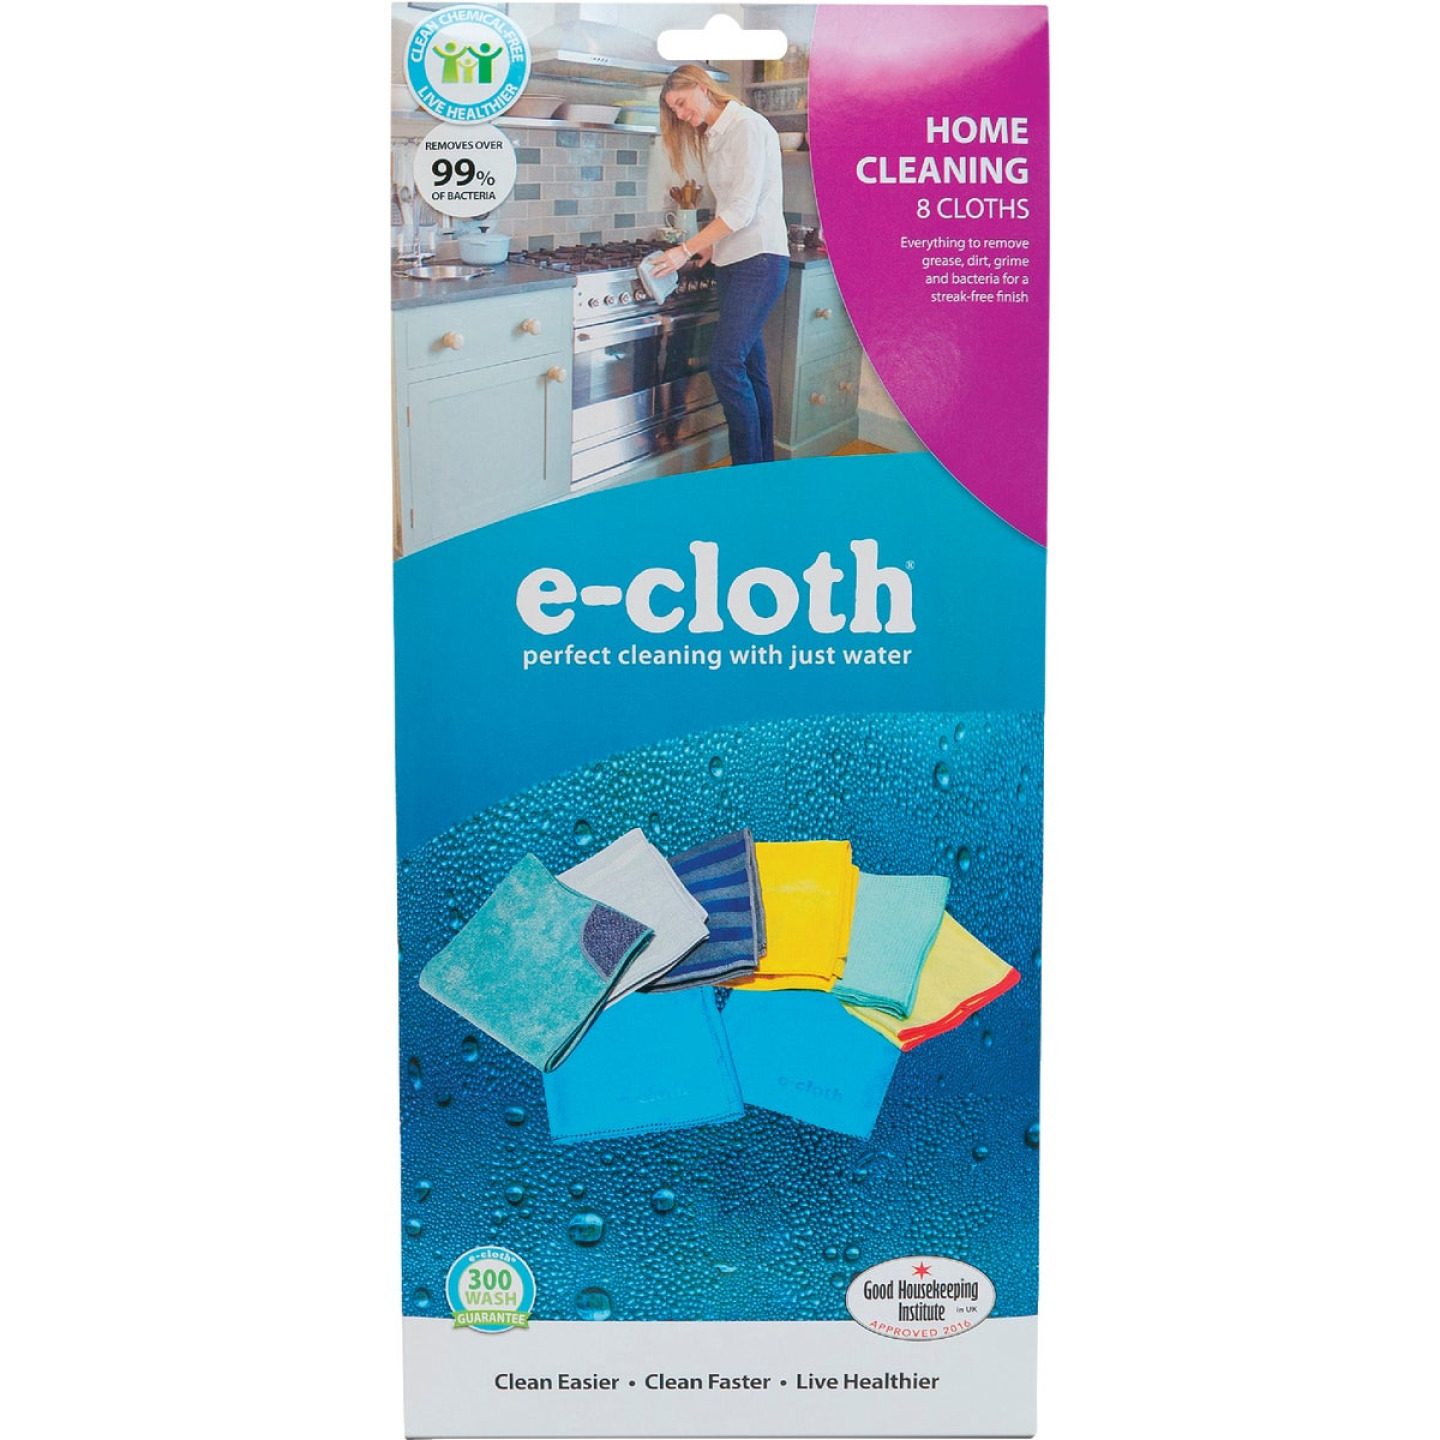 E-Cloth Home Cleaning Cloth Pack (8 Count) Image 2